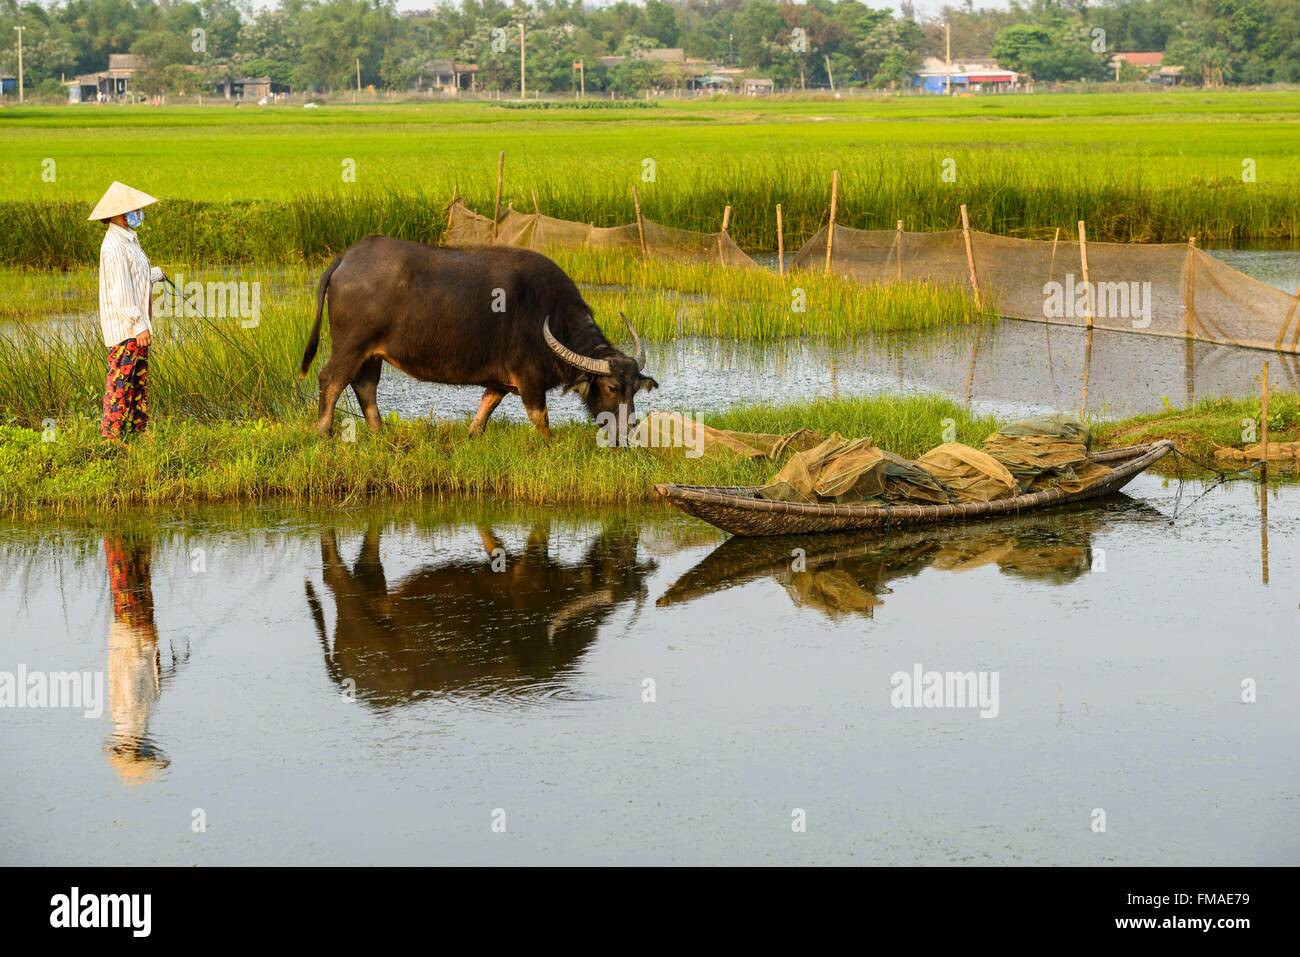 Vietnam, Thua Thien Hue province, Tam Giang lagoon, farmer with her buffalo - Stock Image